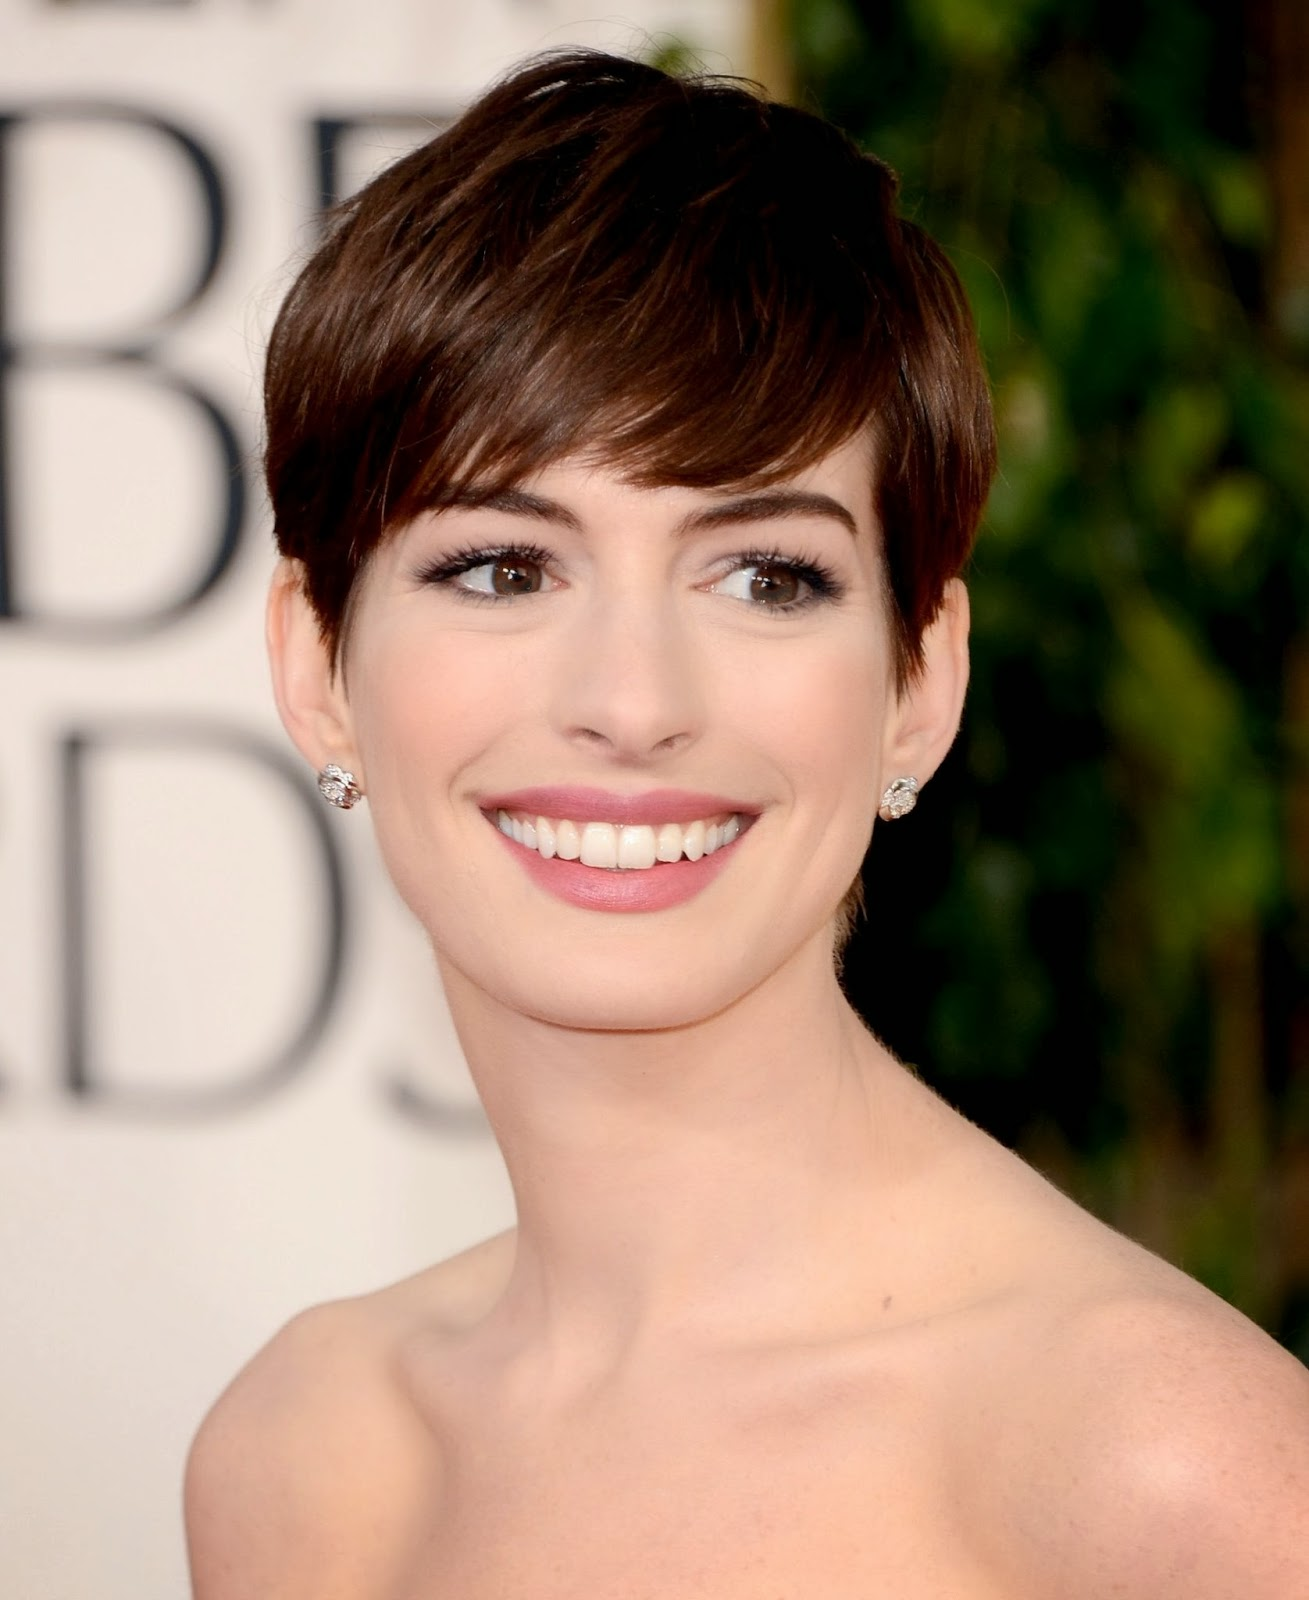 Top Celebrity: Anne Hathaway Who Is?